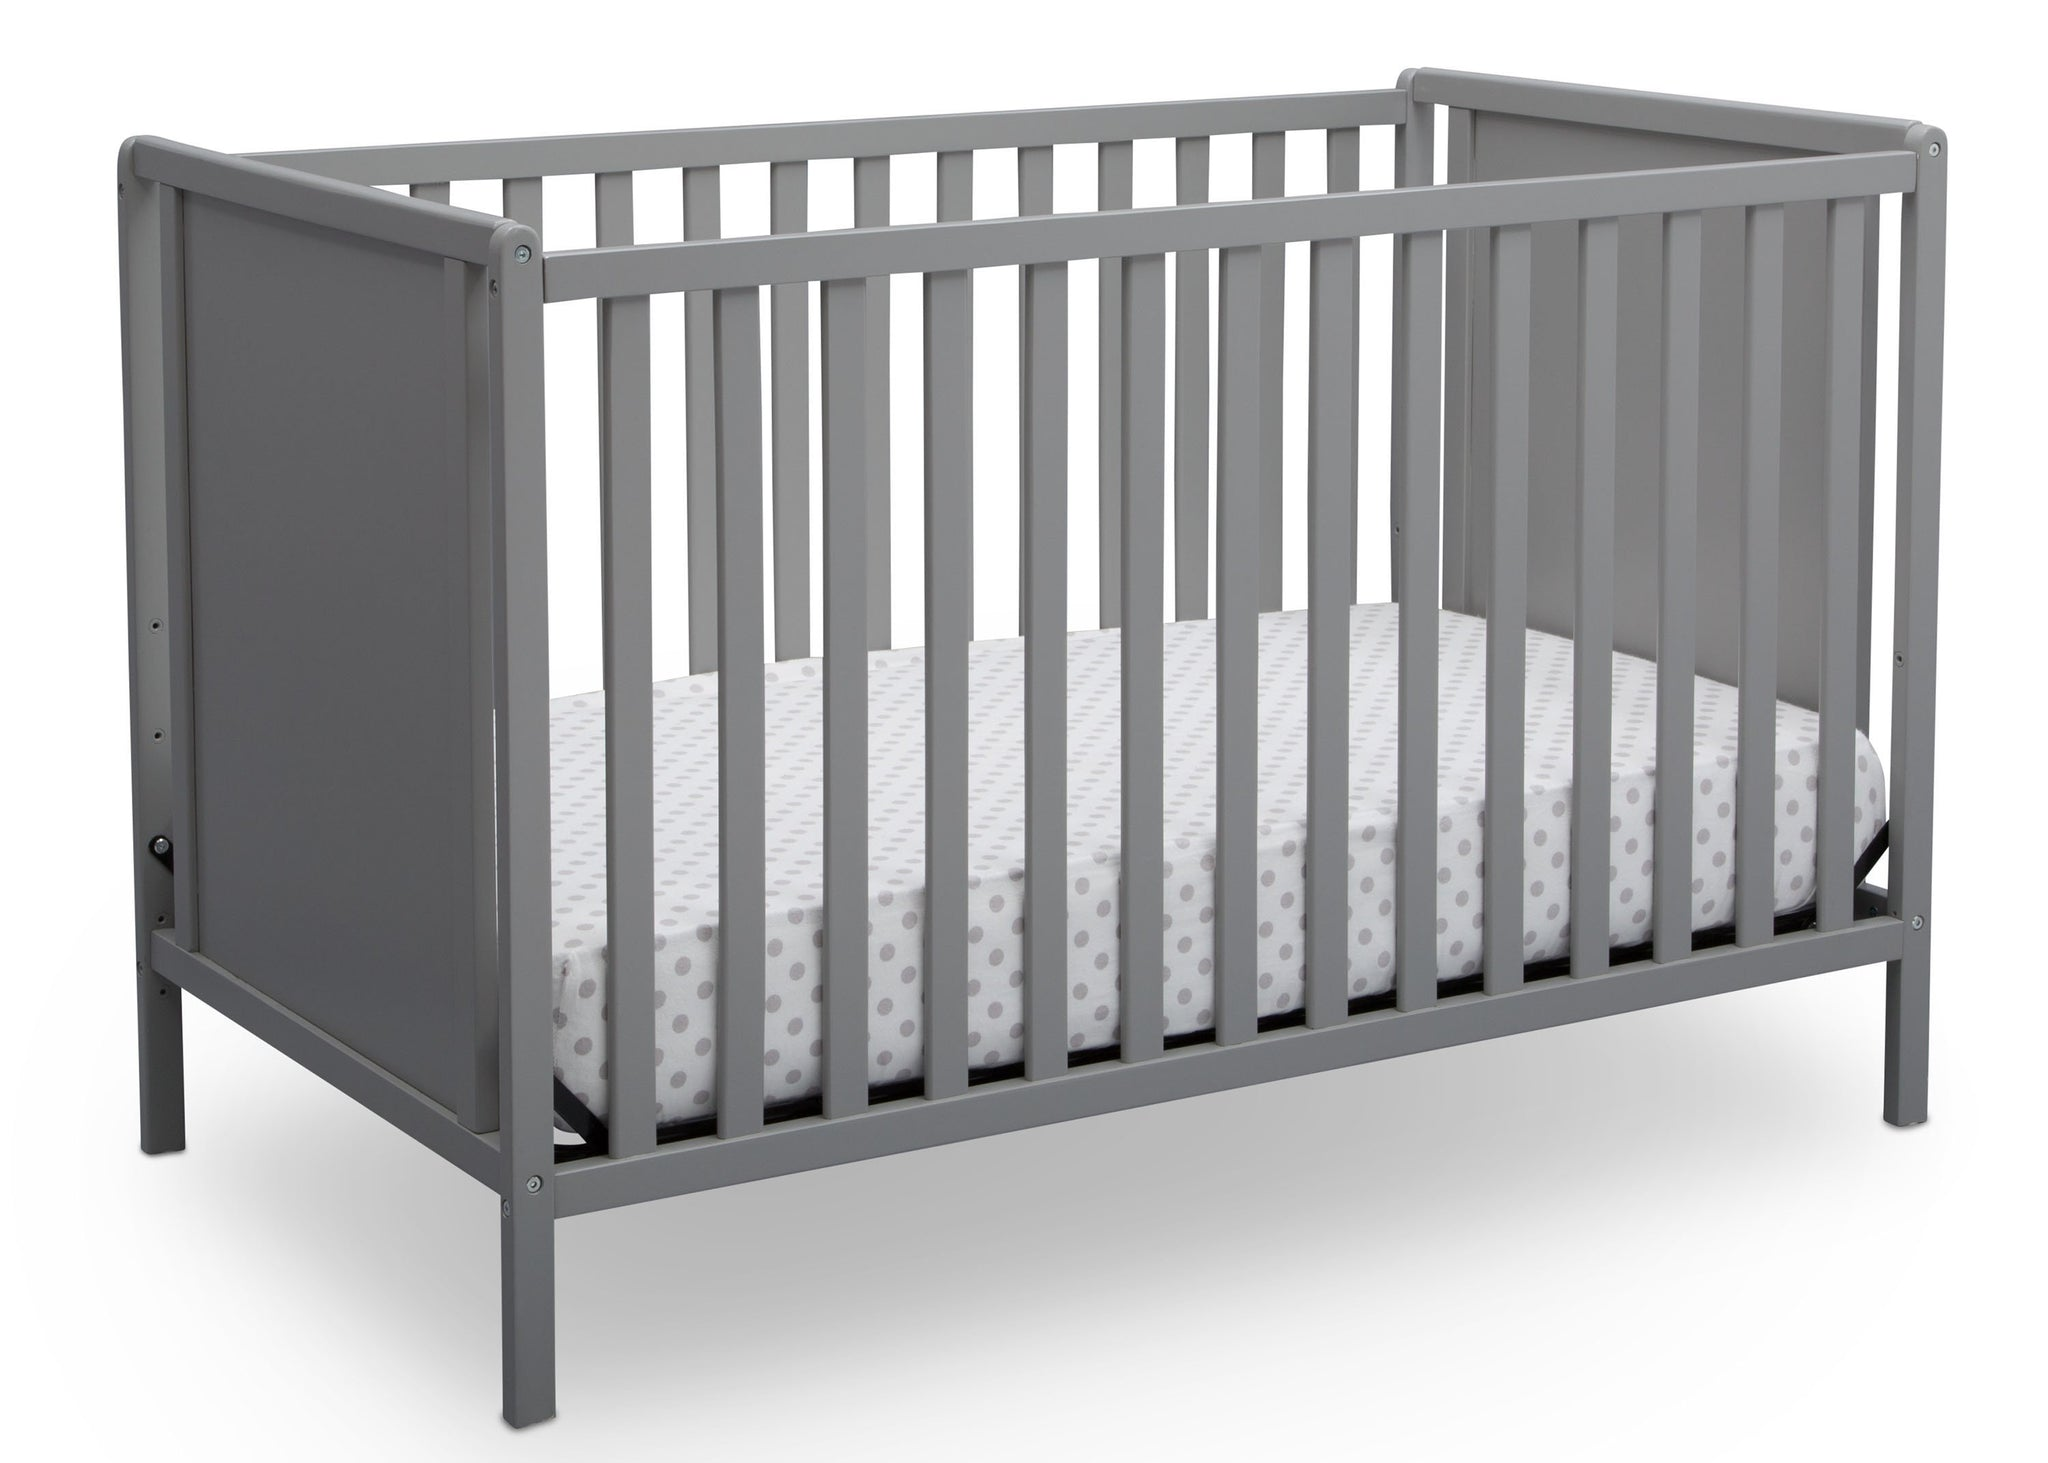 Delta Children Grey (026) Heartland Classic 4-in-1 Convertible Crib, Crib Angle, a3a